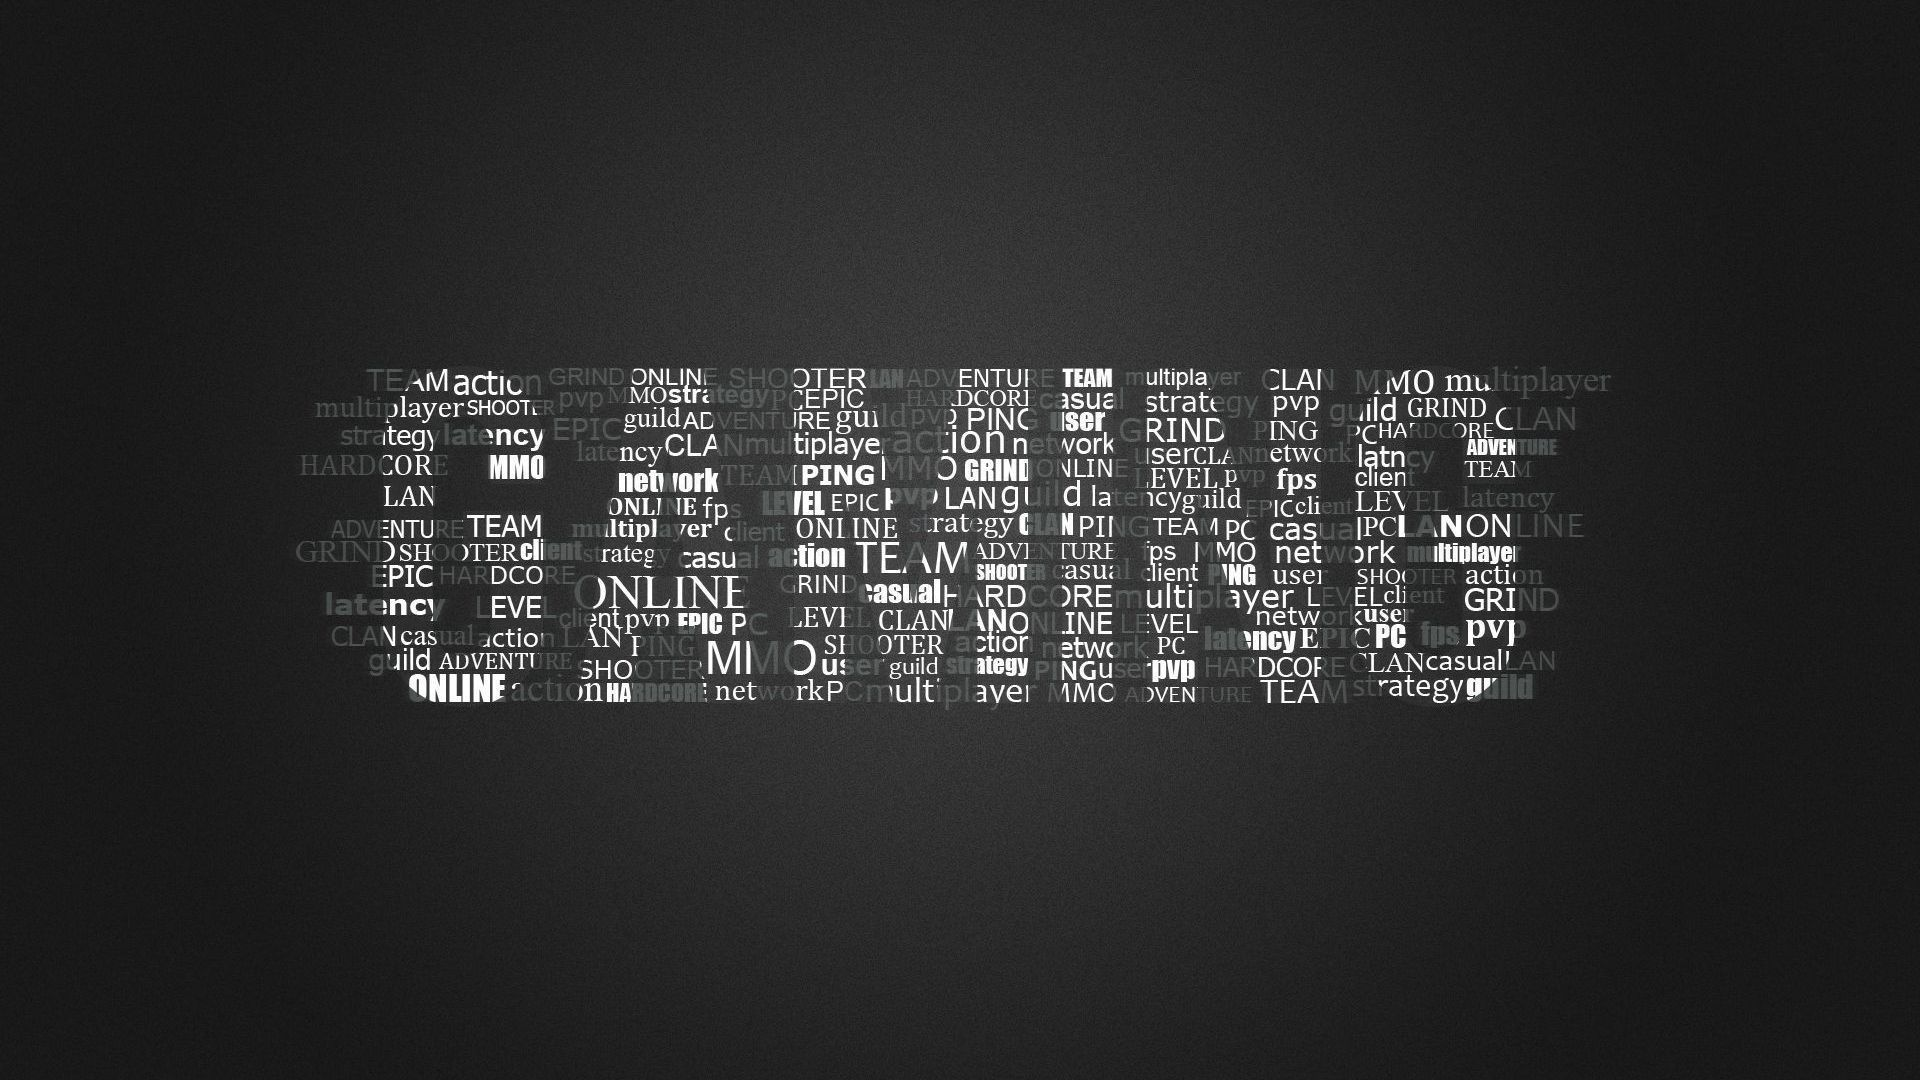 Gaming Logo Wallpapers Wallpapers Backgrounds Images Art Photos Gaming Wallpapers Best Gaming Wallpapers Wallpaper Pc